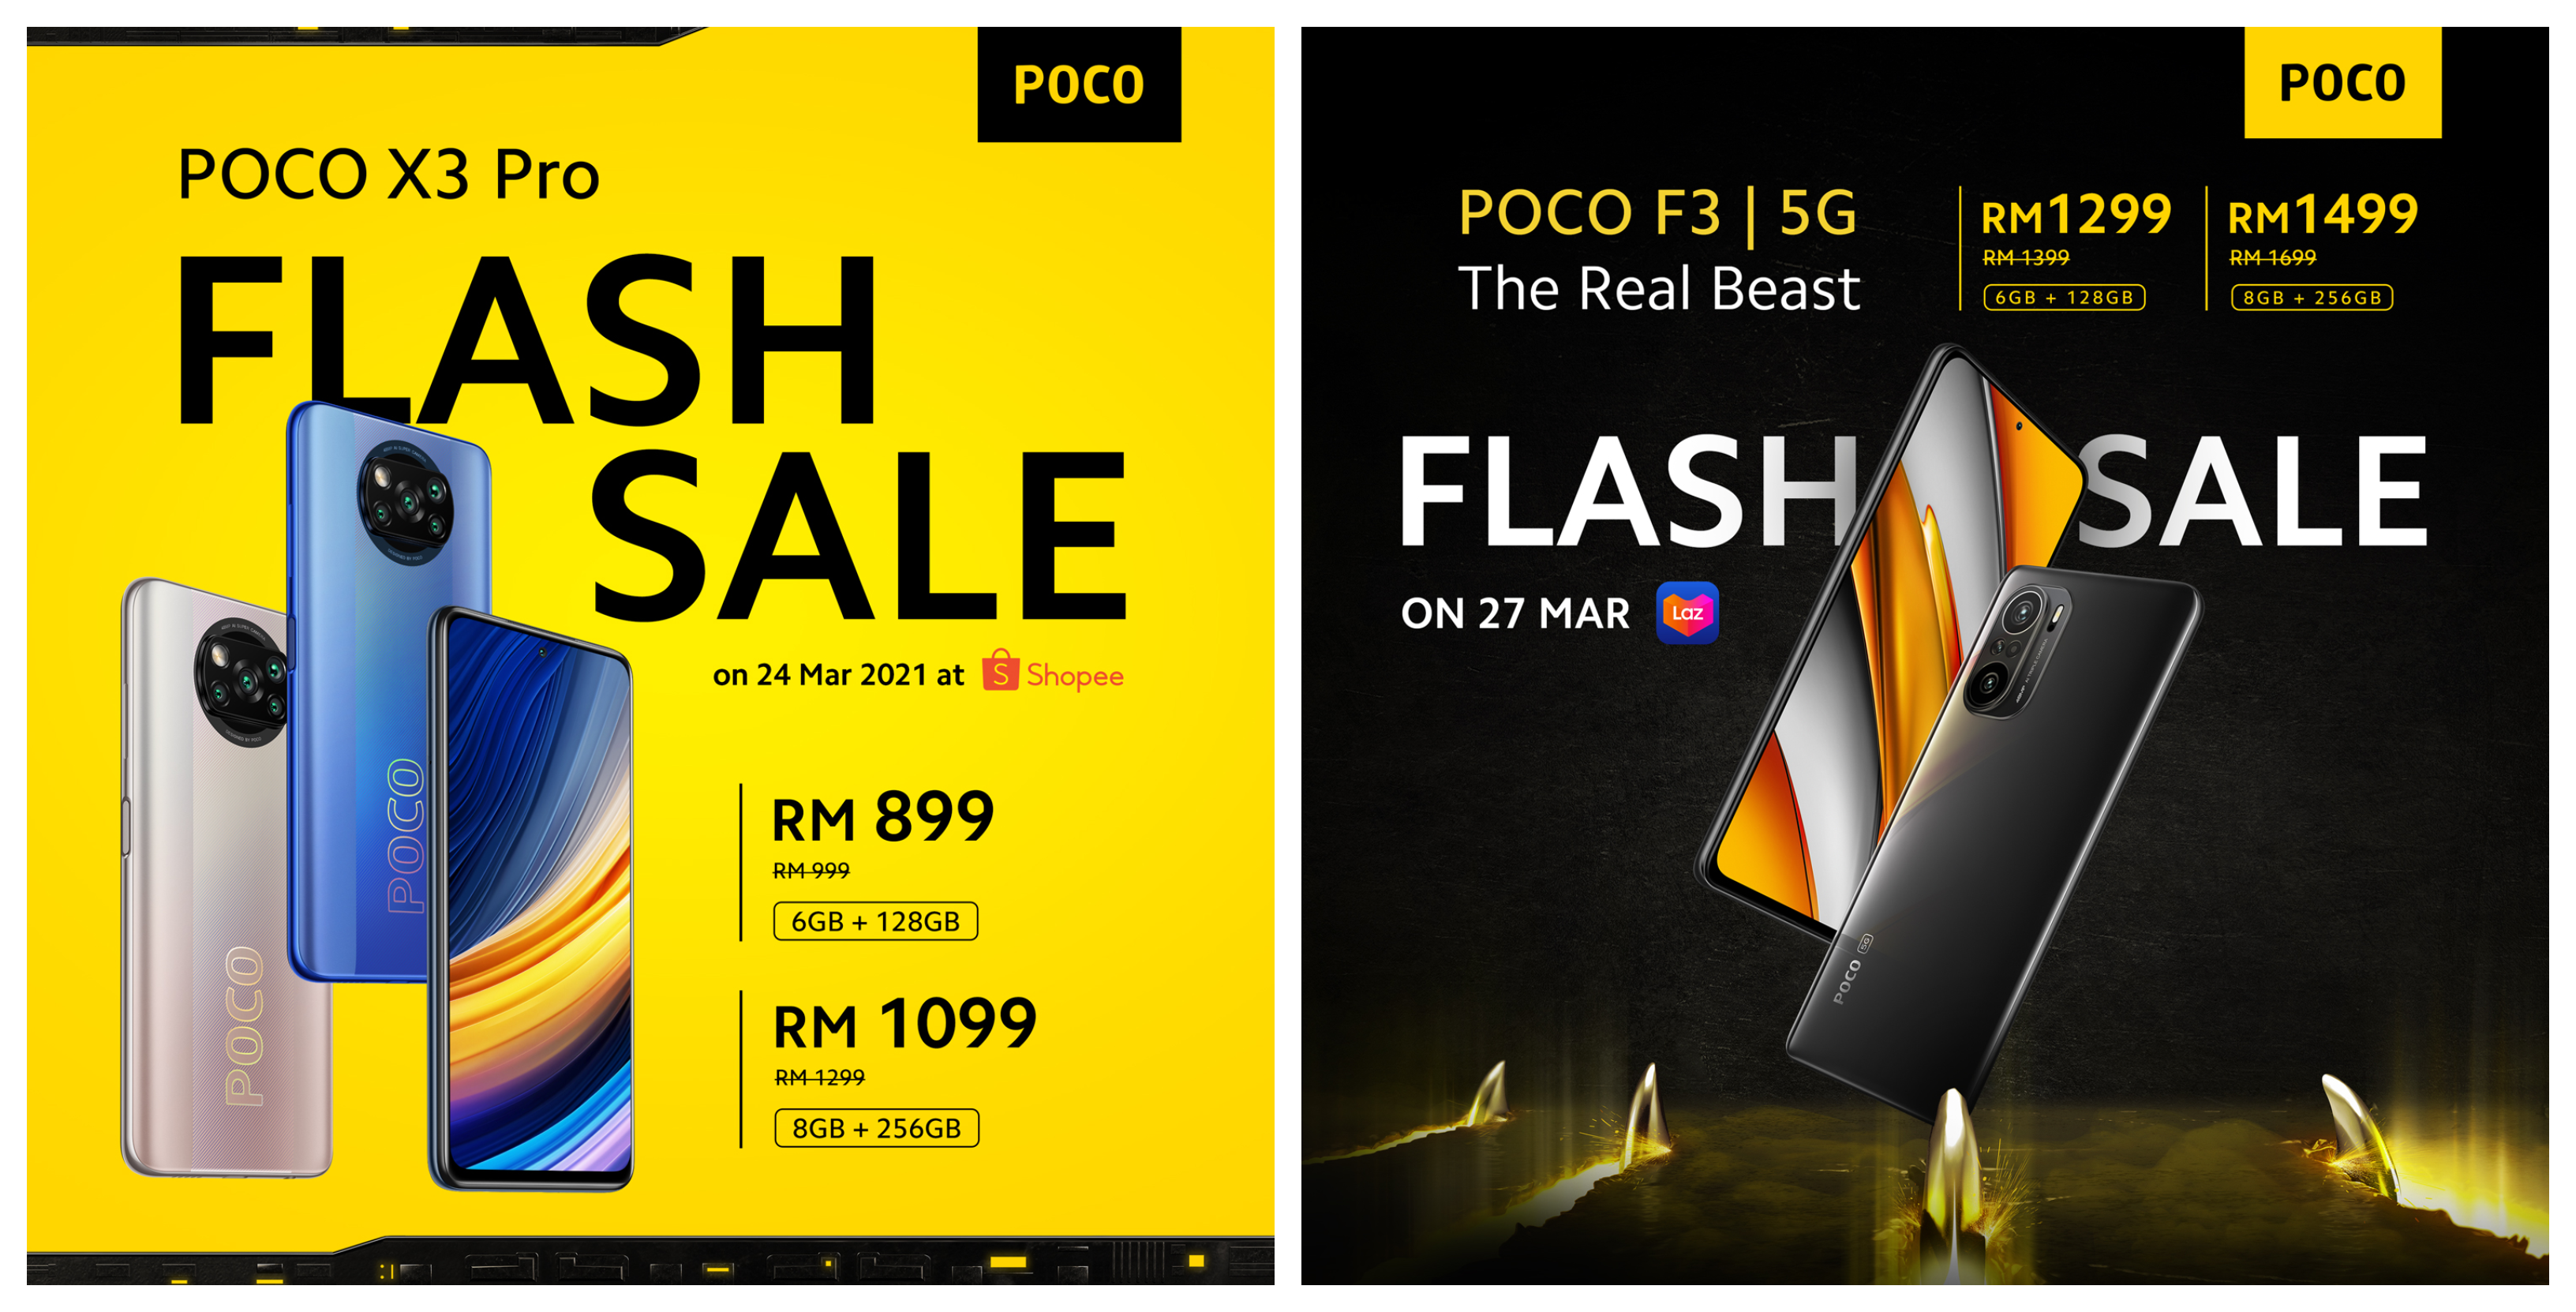 POCO F3 and POCO X3 Pro officially launched in Malaysia 3